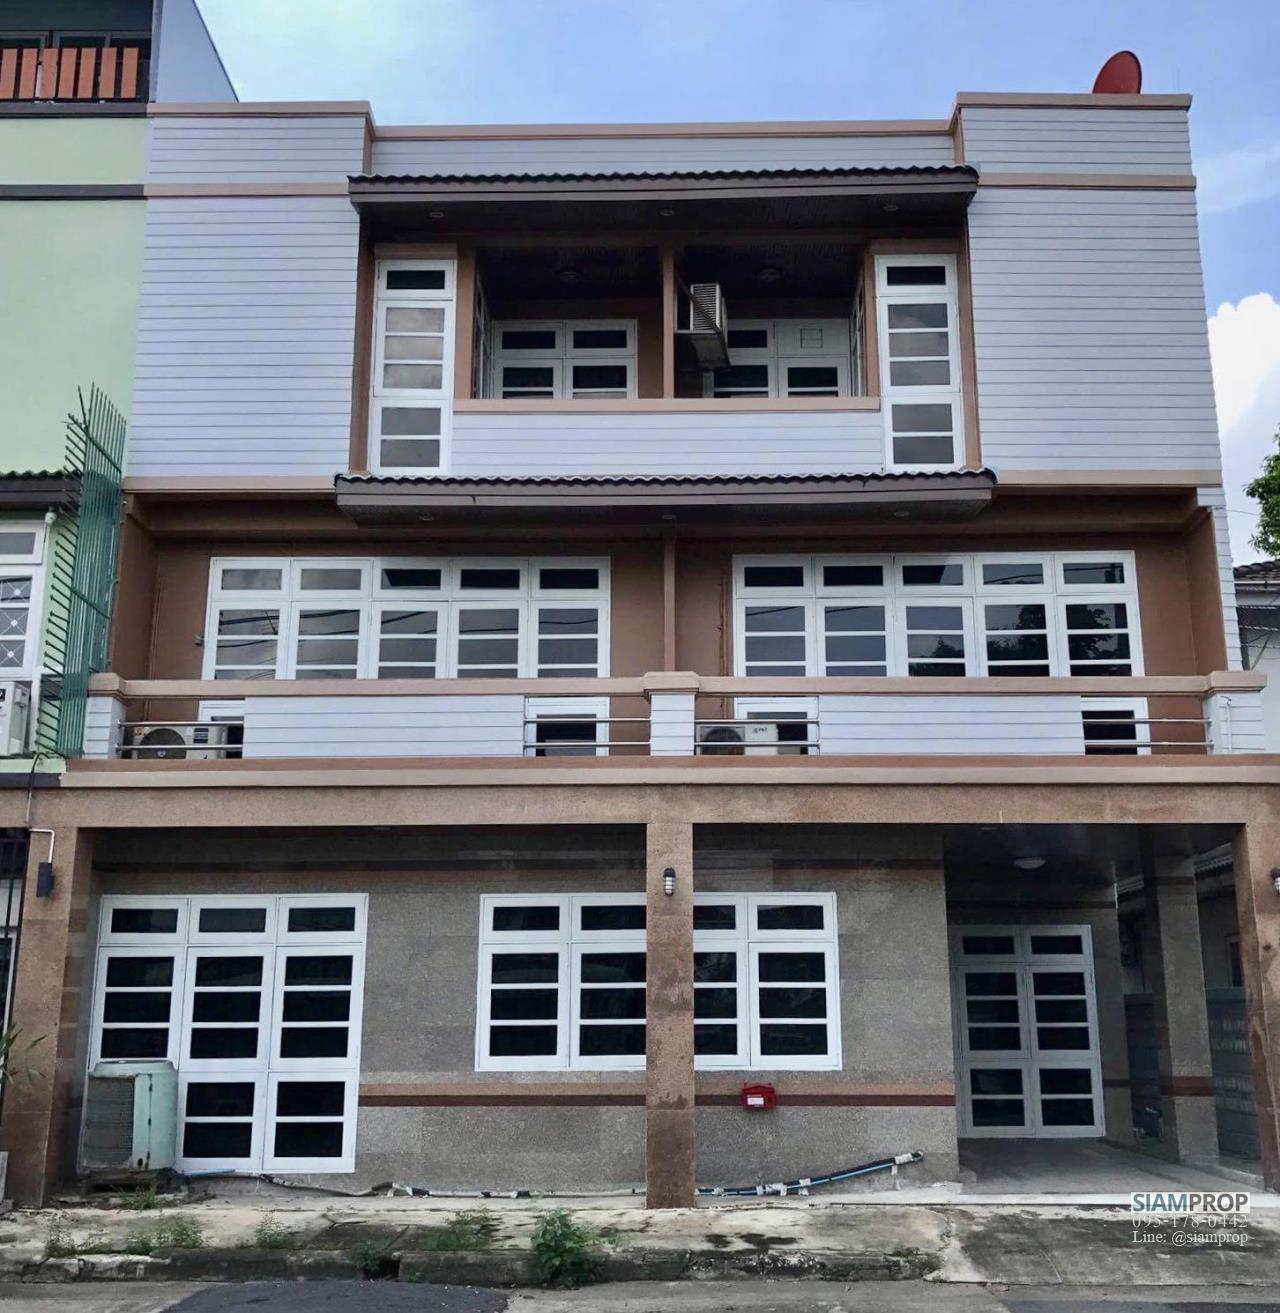 Siam Prop Agency's Home Office for Rent, Townhouse in Napalai Housing near BTS bangna, International school, Bitec bangna. 1